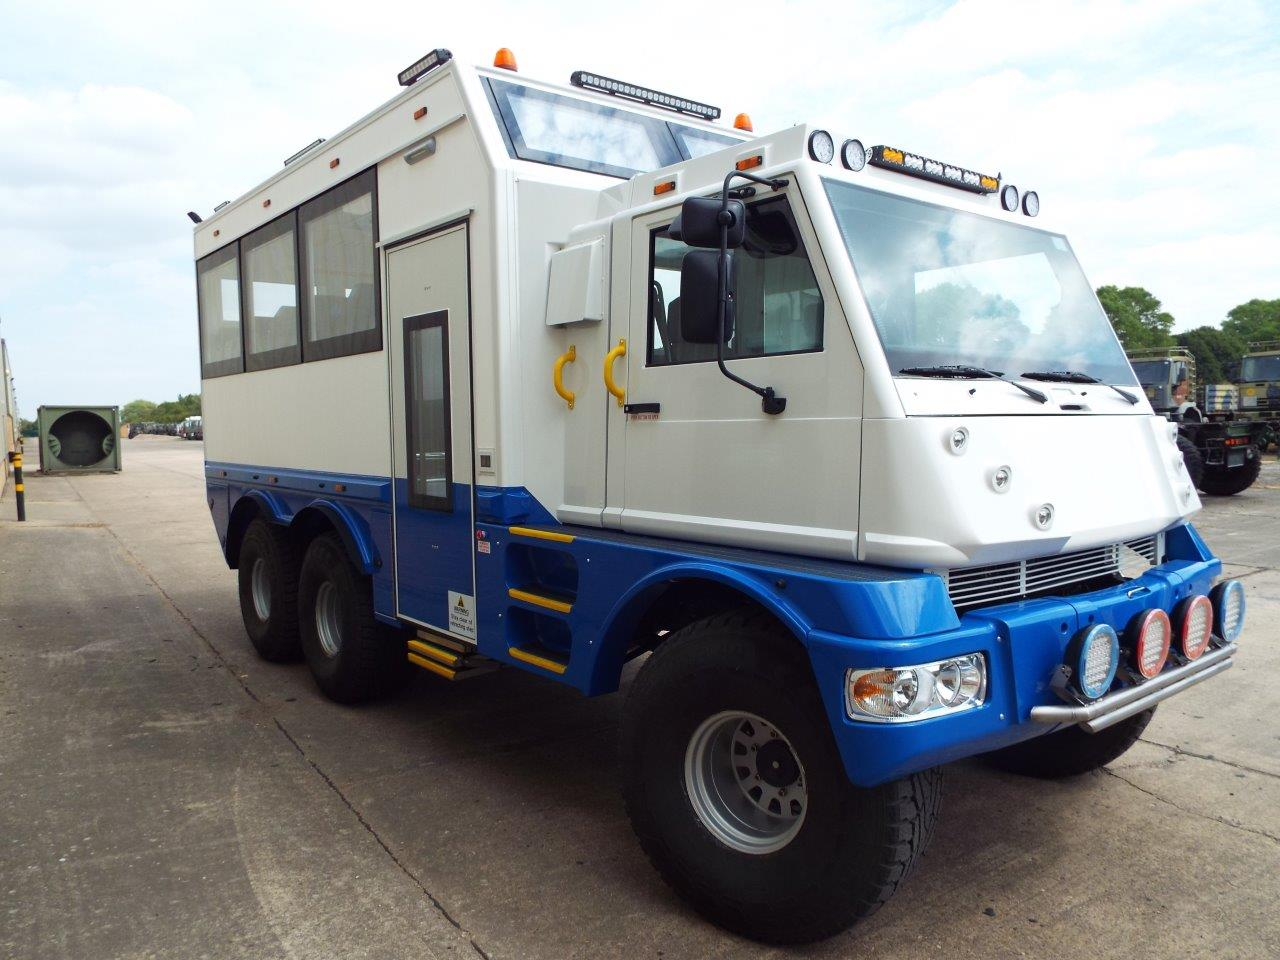 MOWAG Duro II 6x6 Ice Overlander bus for sale